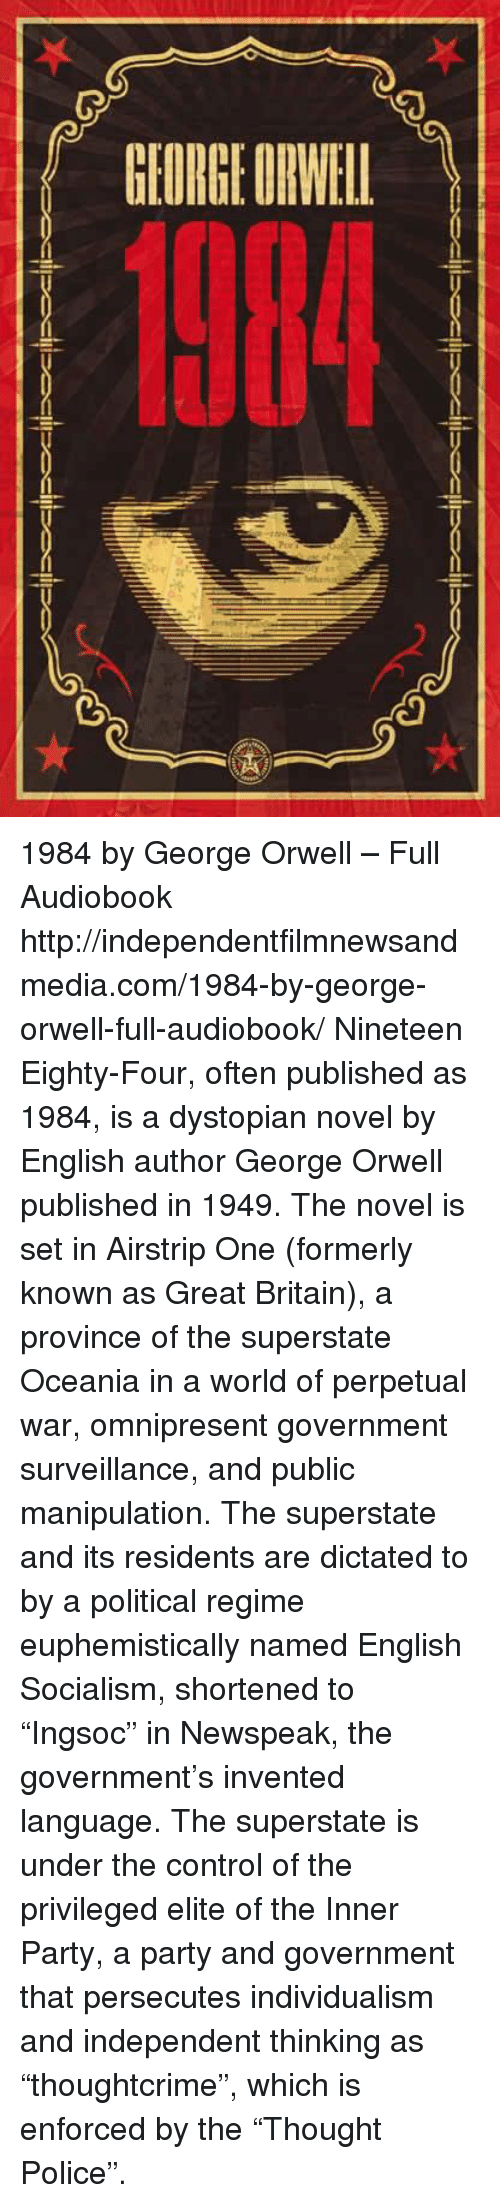 orwell dystopia essay Orwell's novel is a dystopia, a distinctly 20th-century extension and inversion of the long tradition of the utopia, the imagined eu-topos, or 'good place.